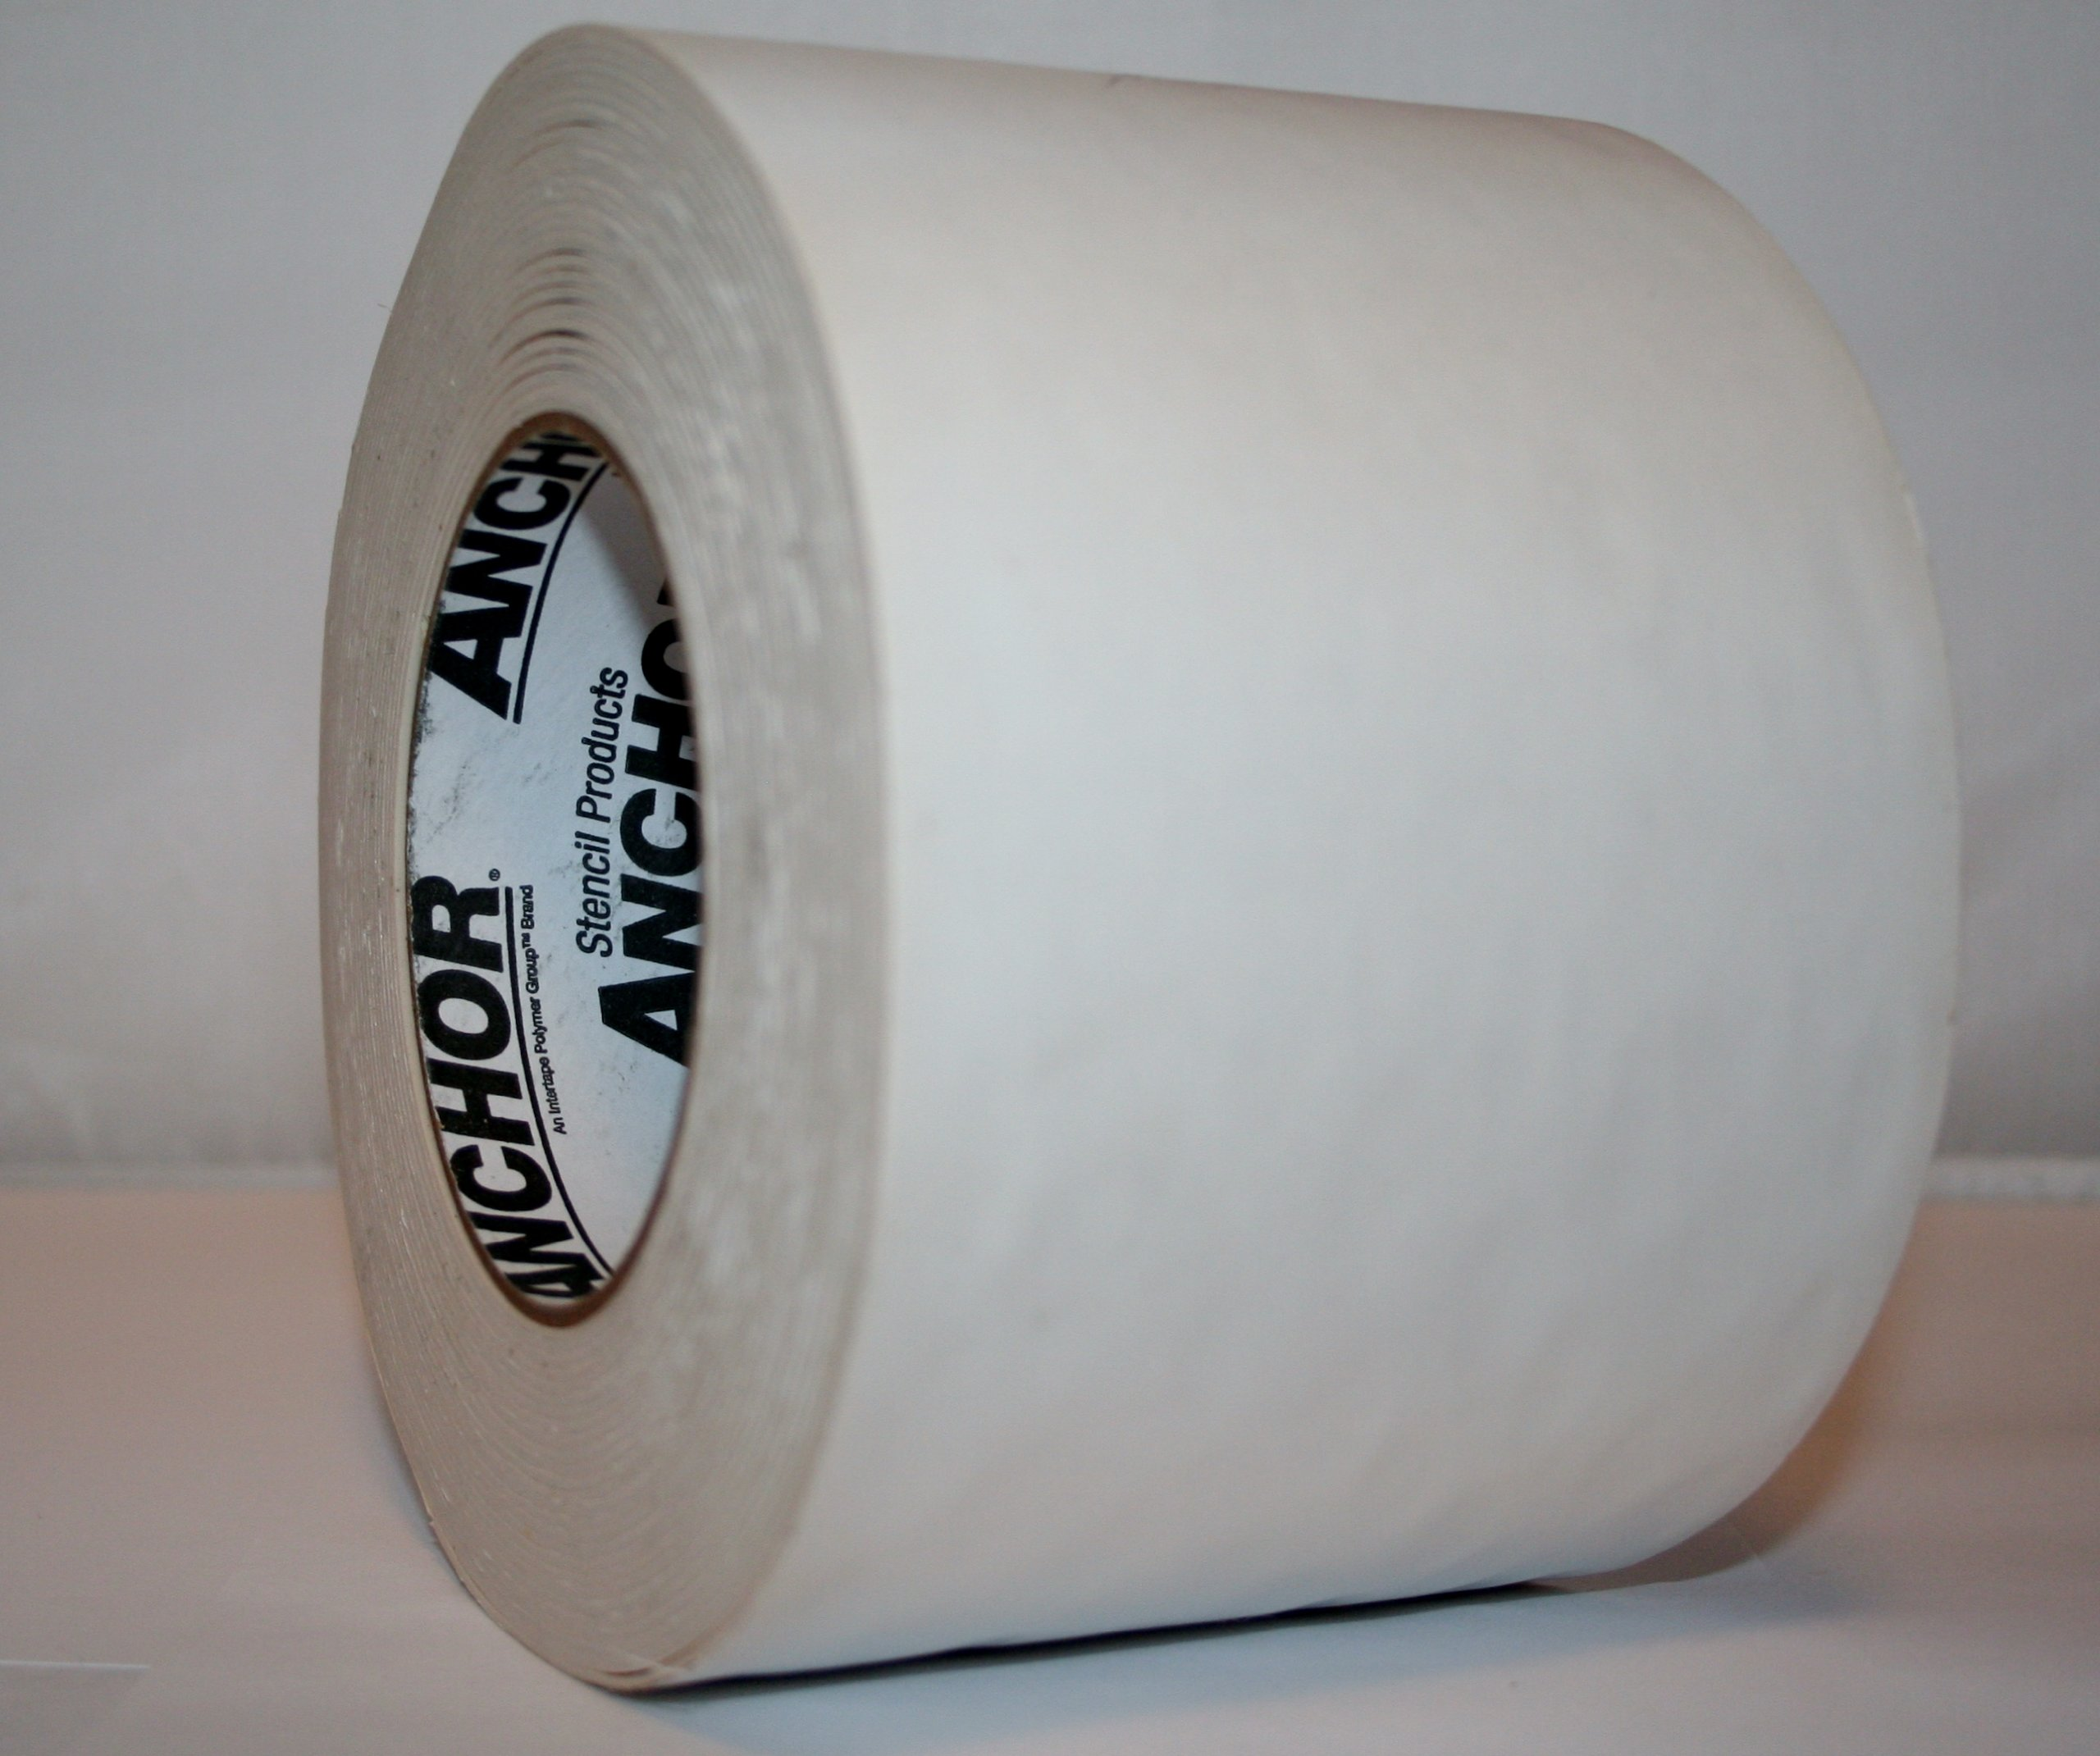 Maxi Blast Impact Acrylic Adhesive Tape, 45 mil Thick, 10 Yds Length, 2'' Width, Natural by Maxi